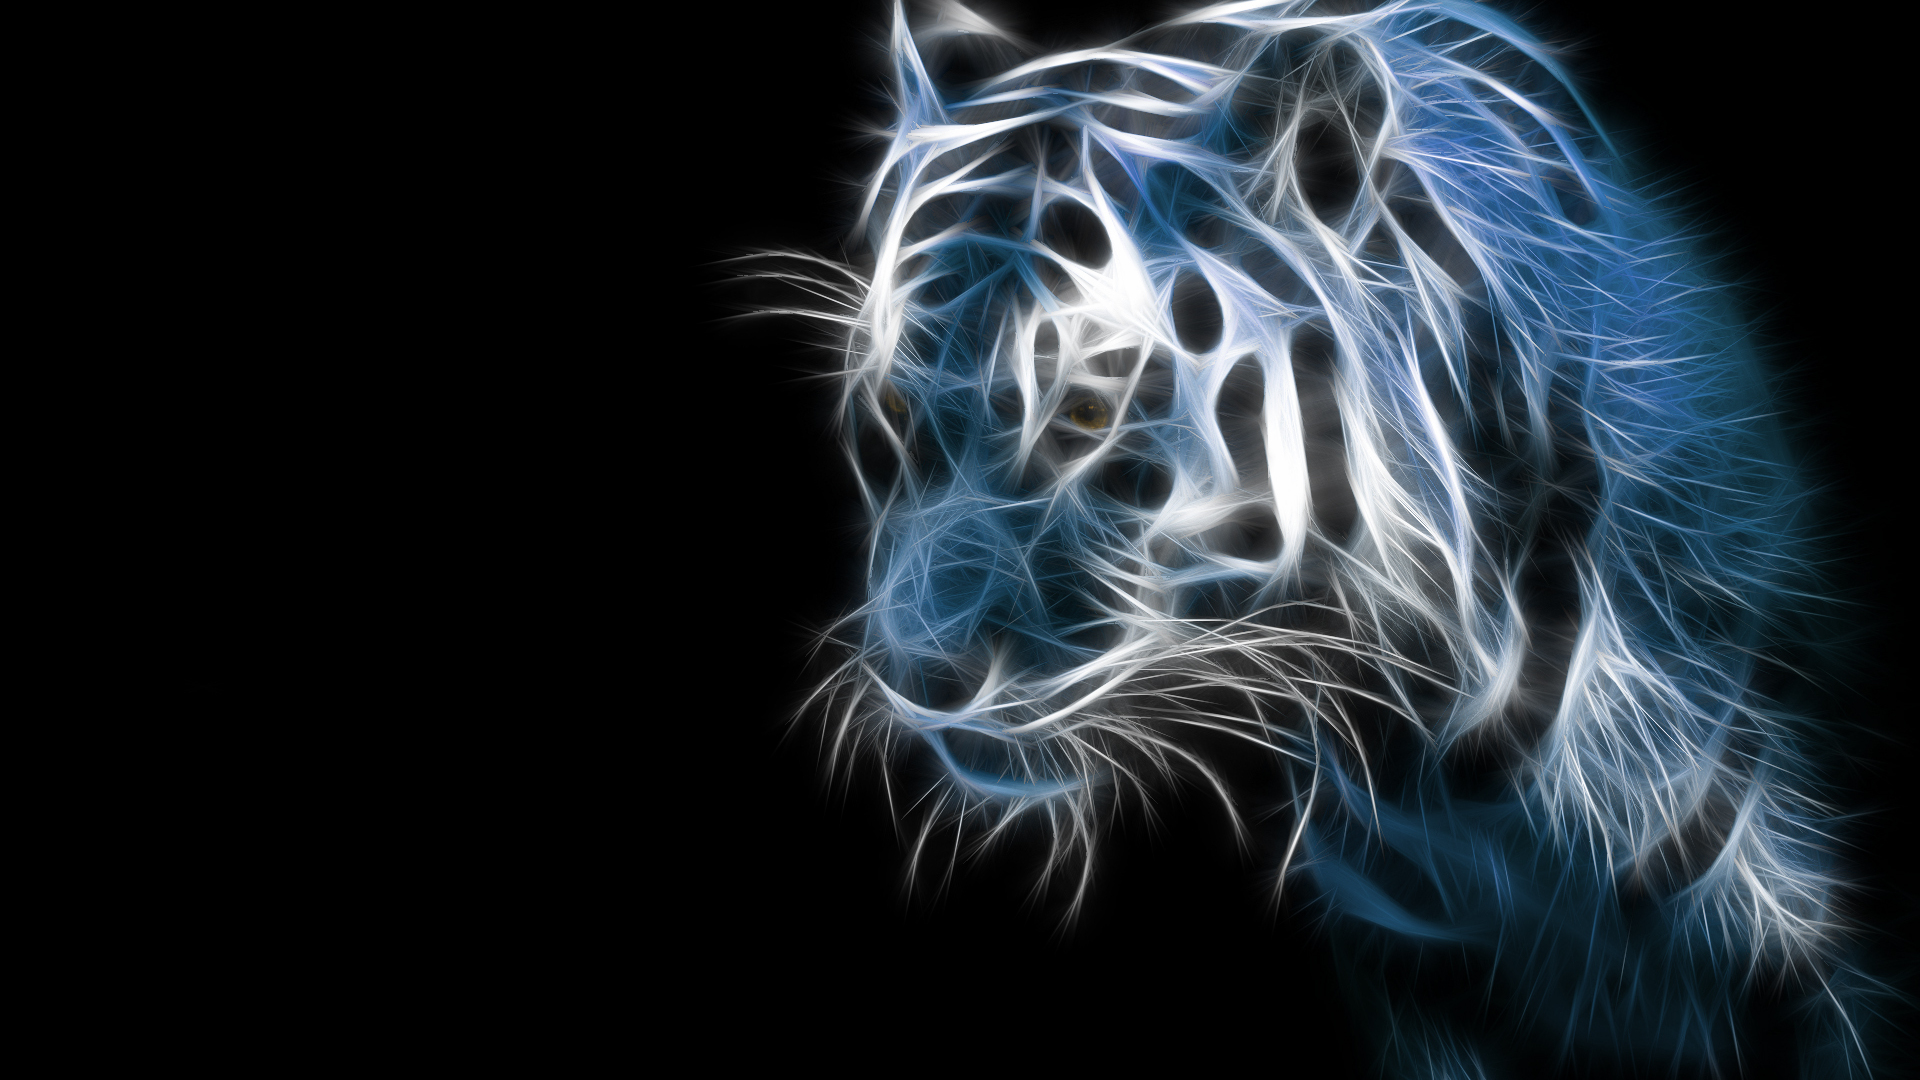 Download Tiger Animal Wallpaper 1920x1080 Full HD Wallpapers 1920x1080